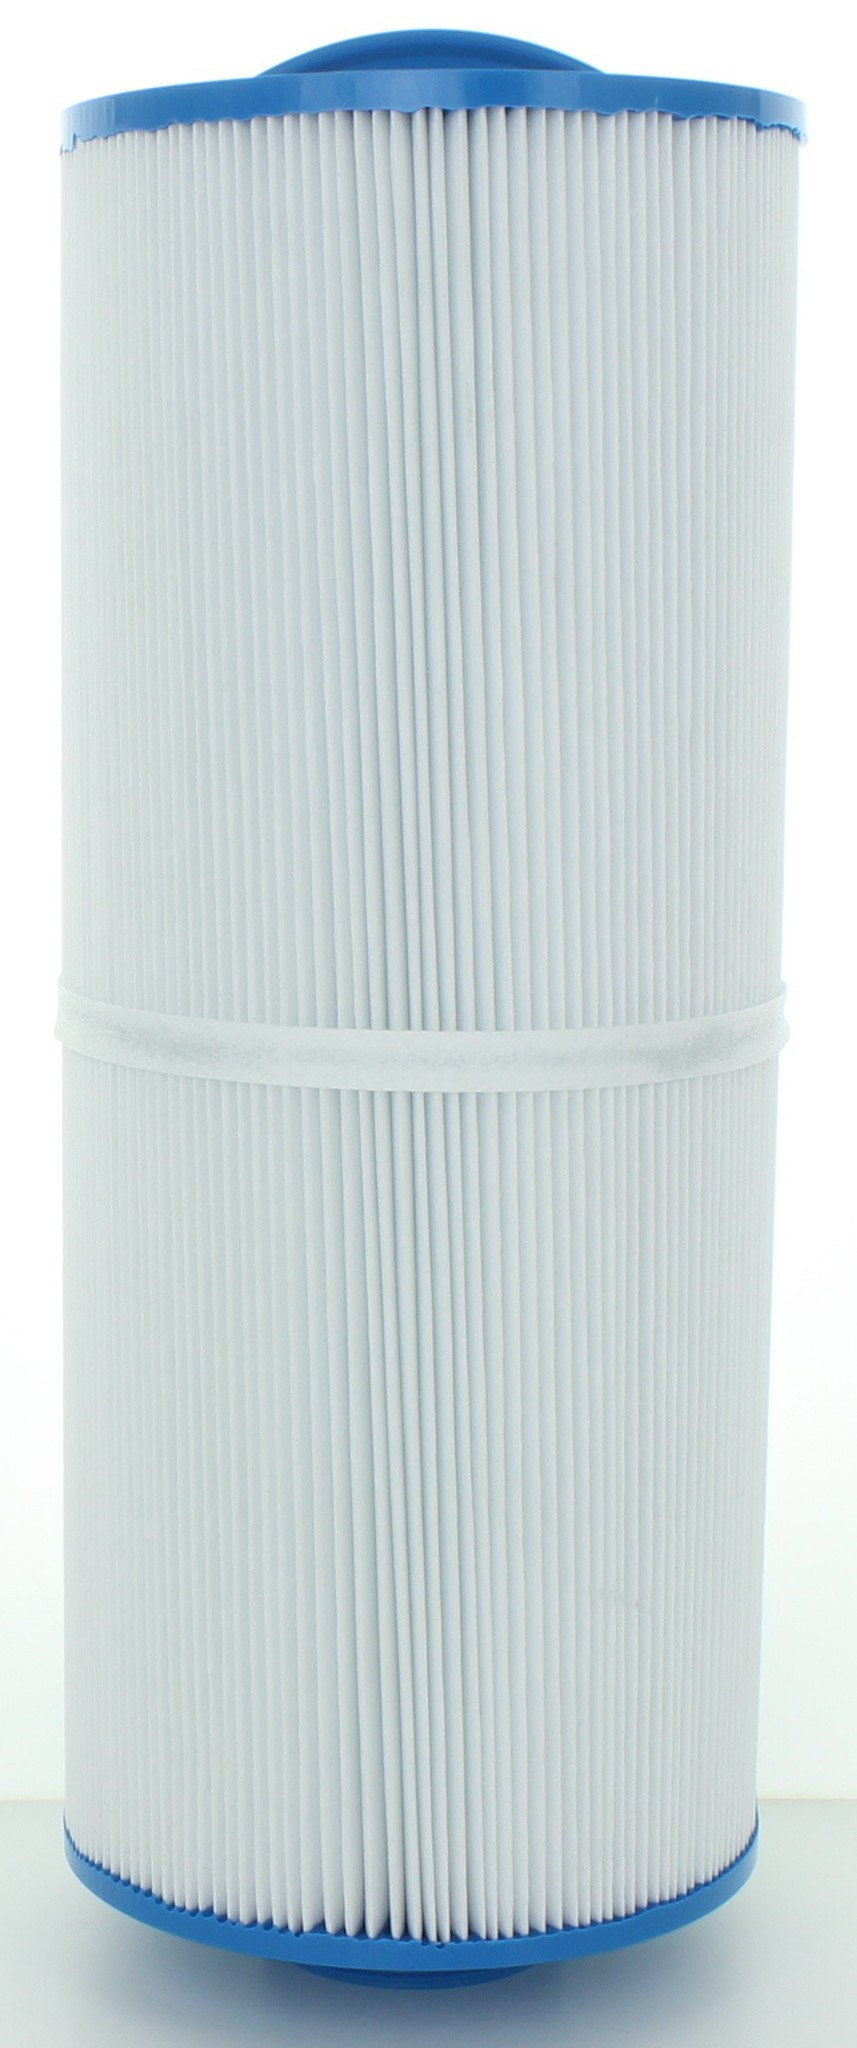 Replaces Unicel 5CH-352, Pleatco PPM35SC-F2M • Hot Tub & Spa Filter Cartridge-Filter Cartridge-FilterDeal.com